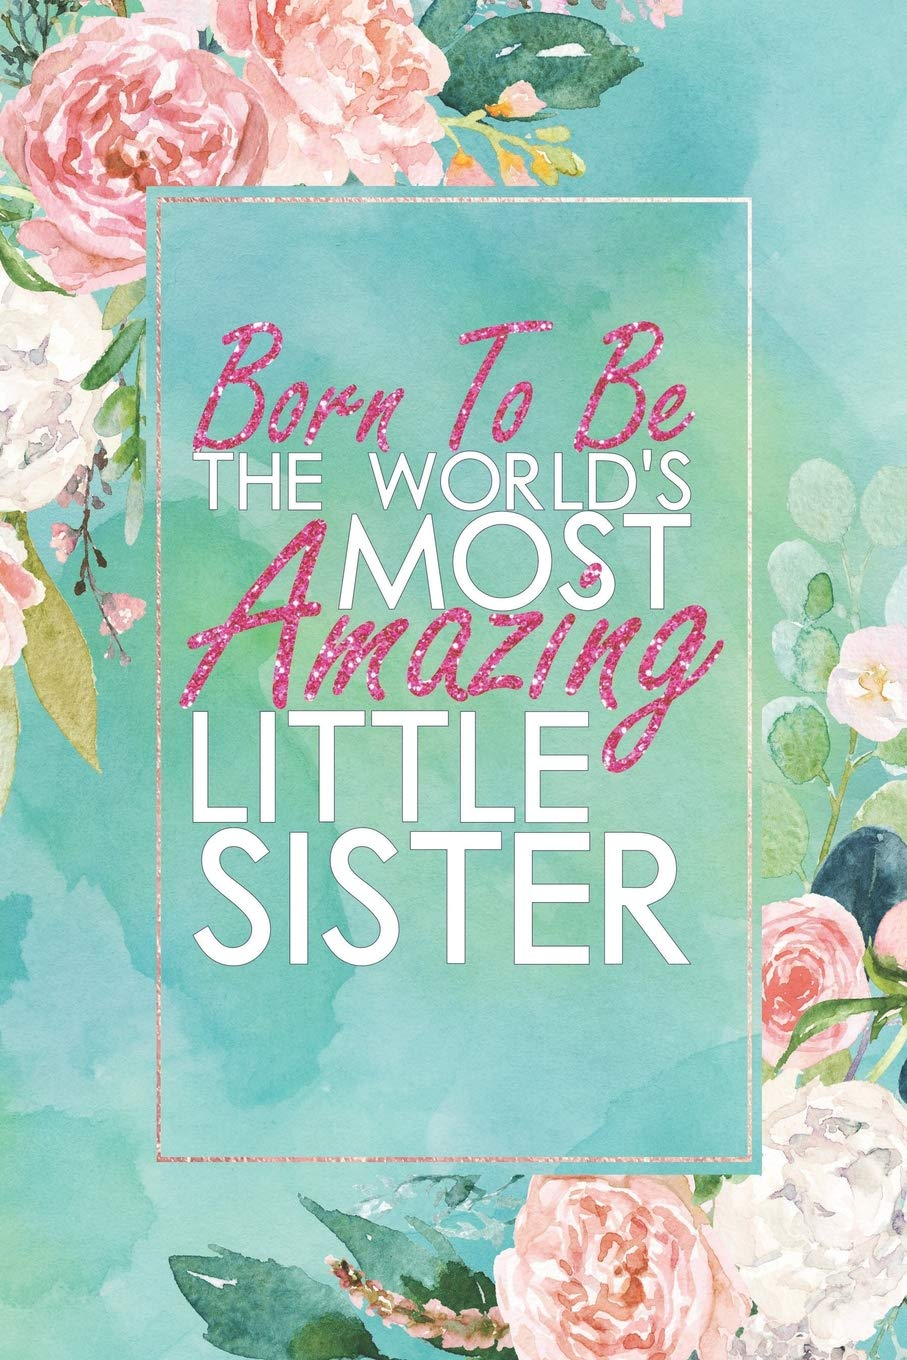 Born To Be The World's Most Amazing Little Sister: An 12